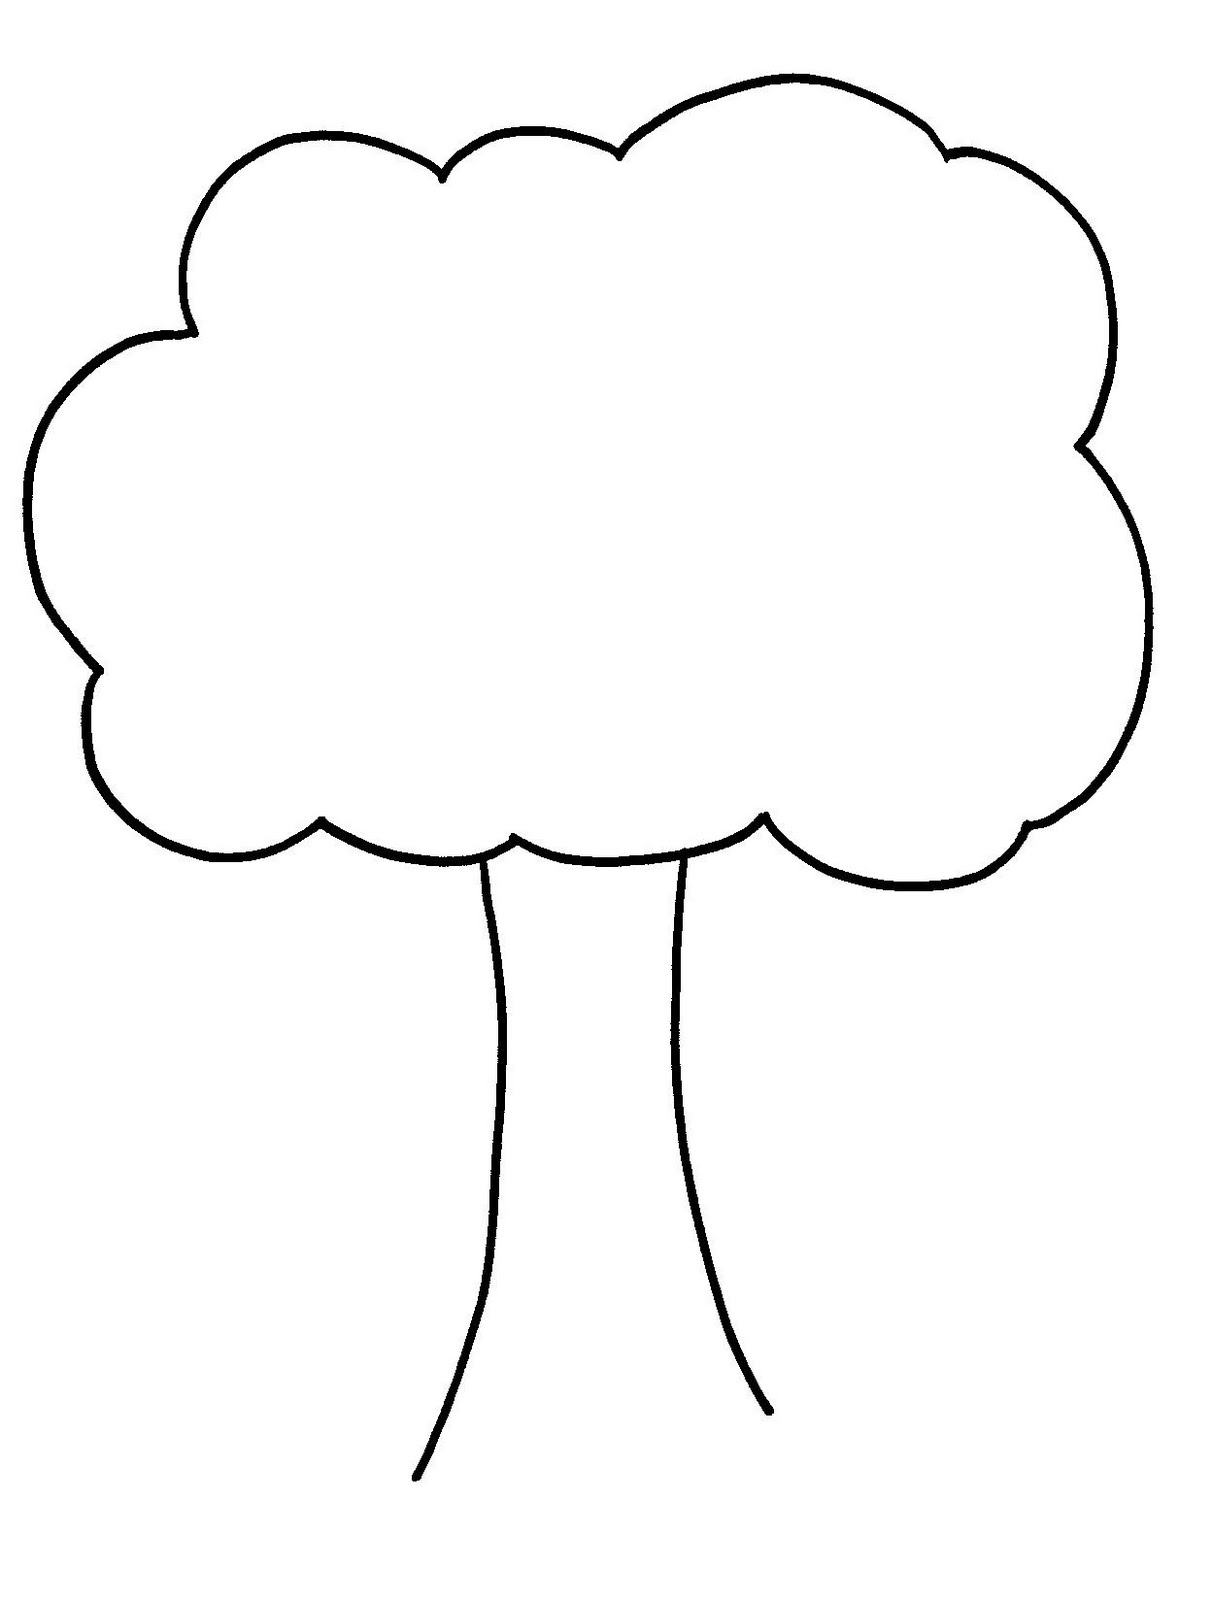 Clip Art Tree Outline.